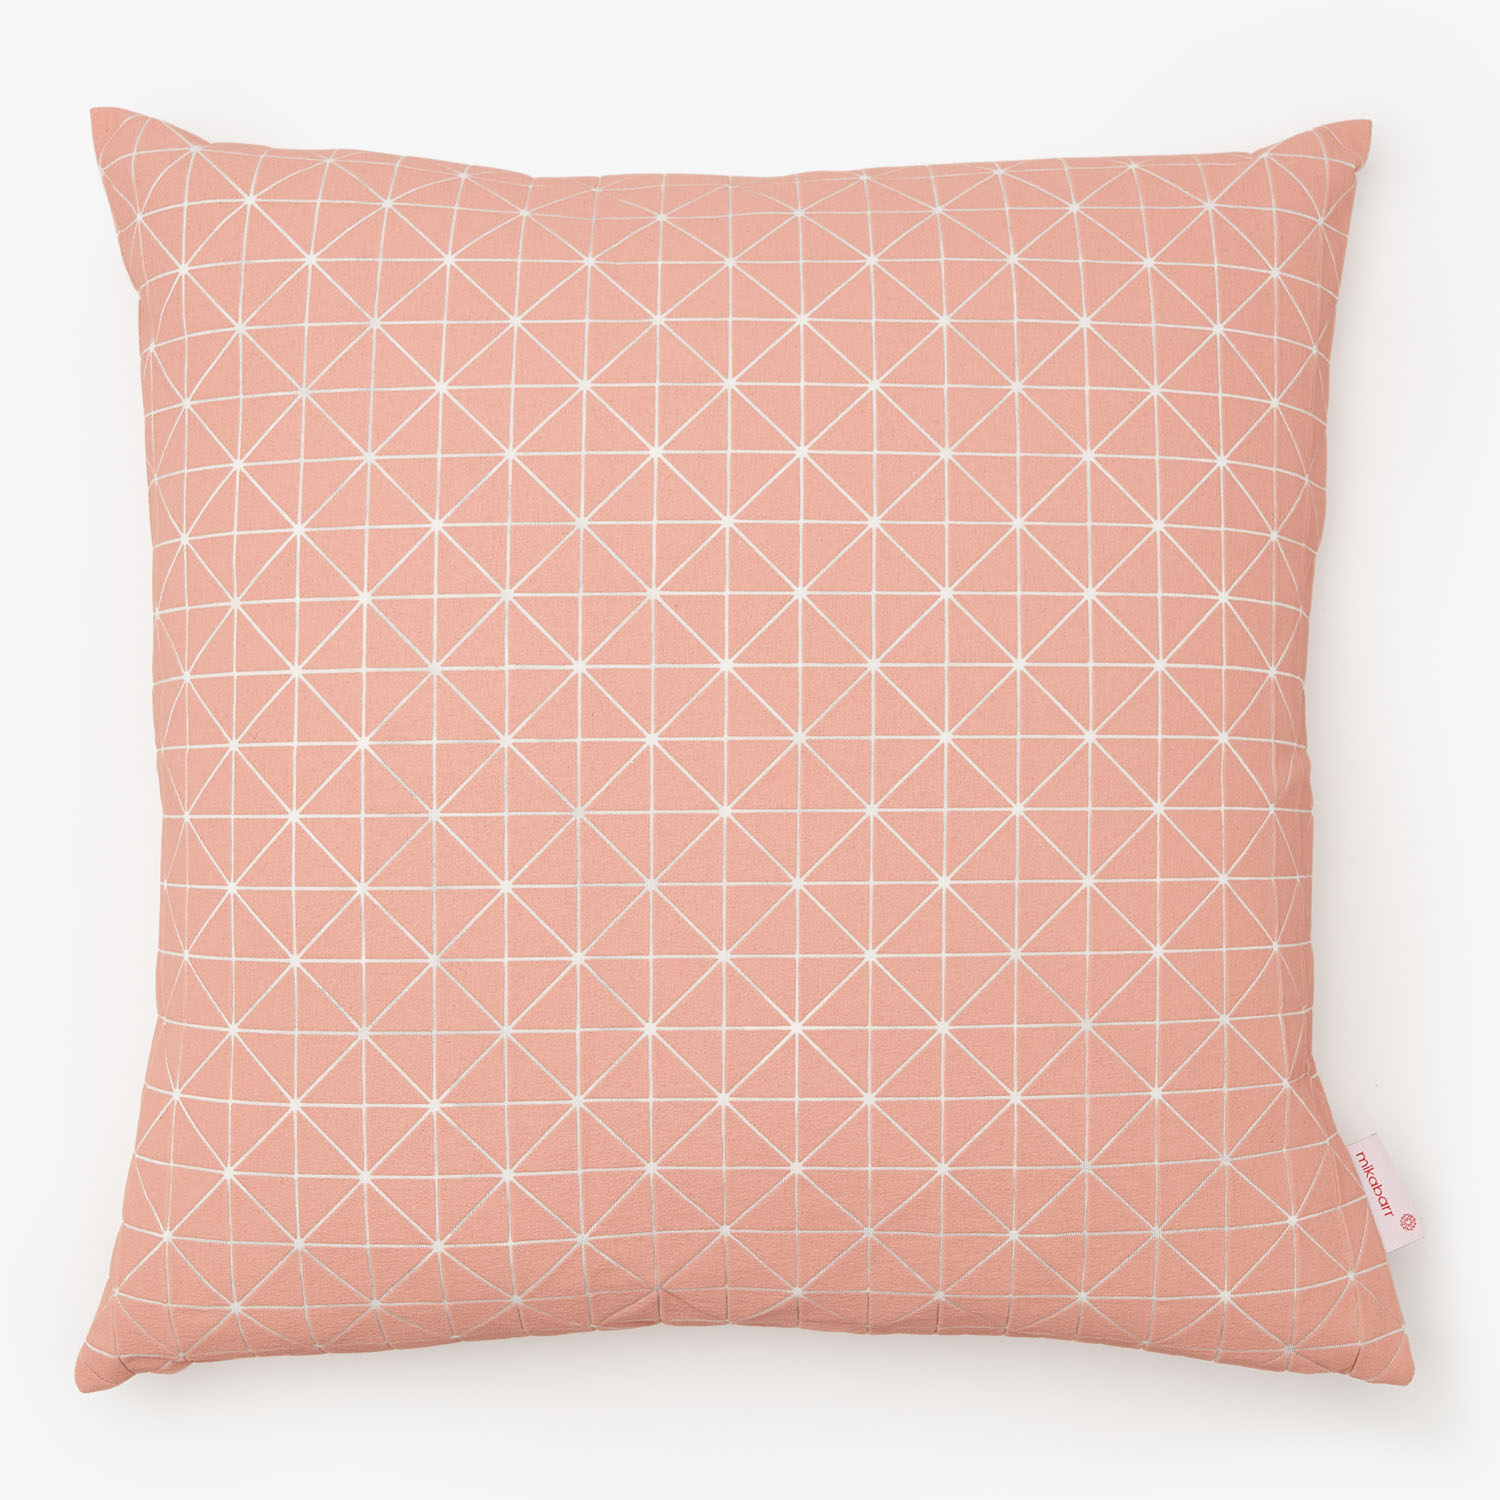 mikabarr geo origami pillow pale pink - pink